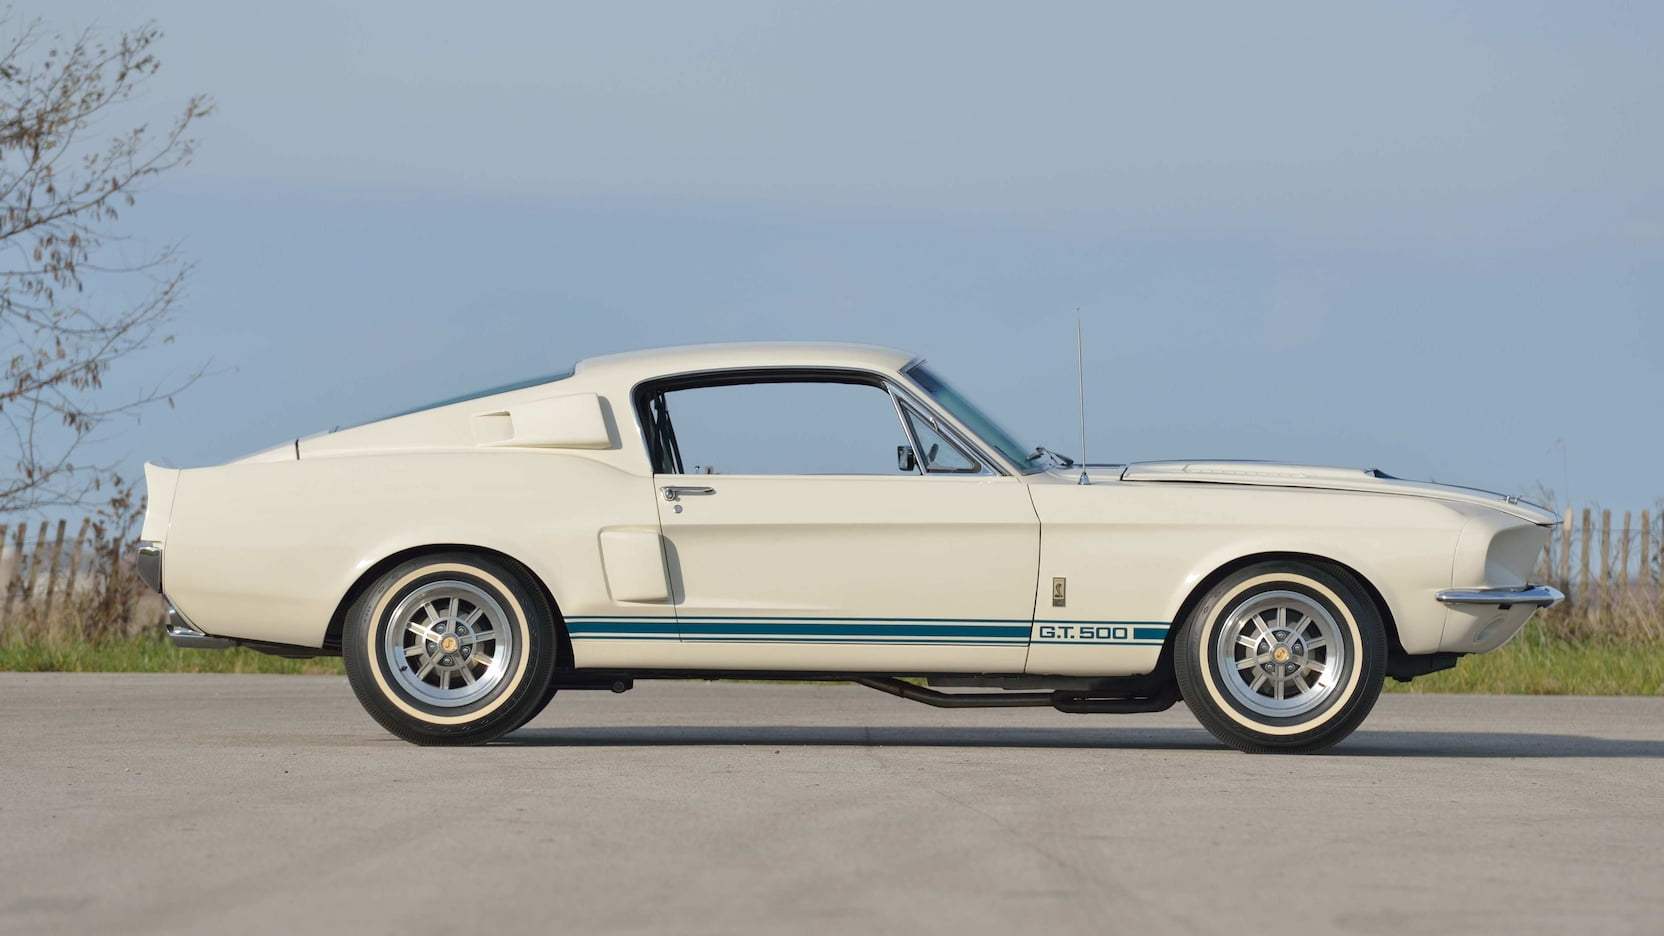 1967 Shelby GT500 Super Snake side profile